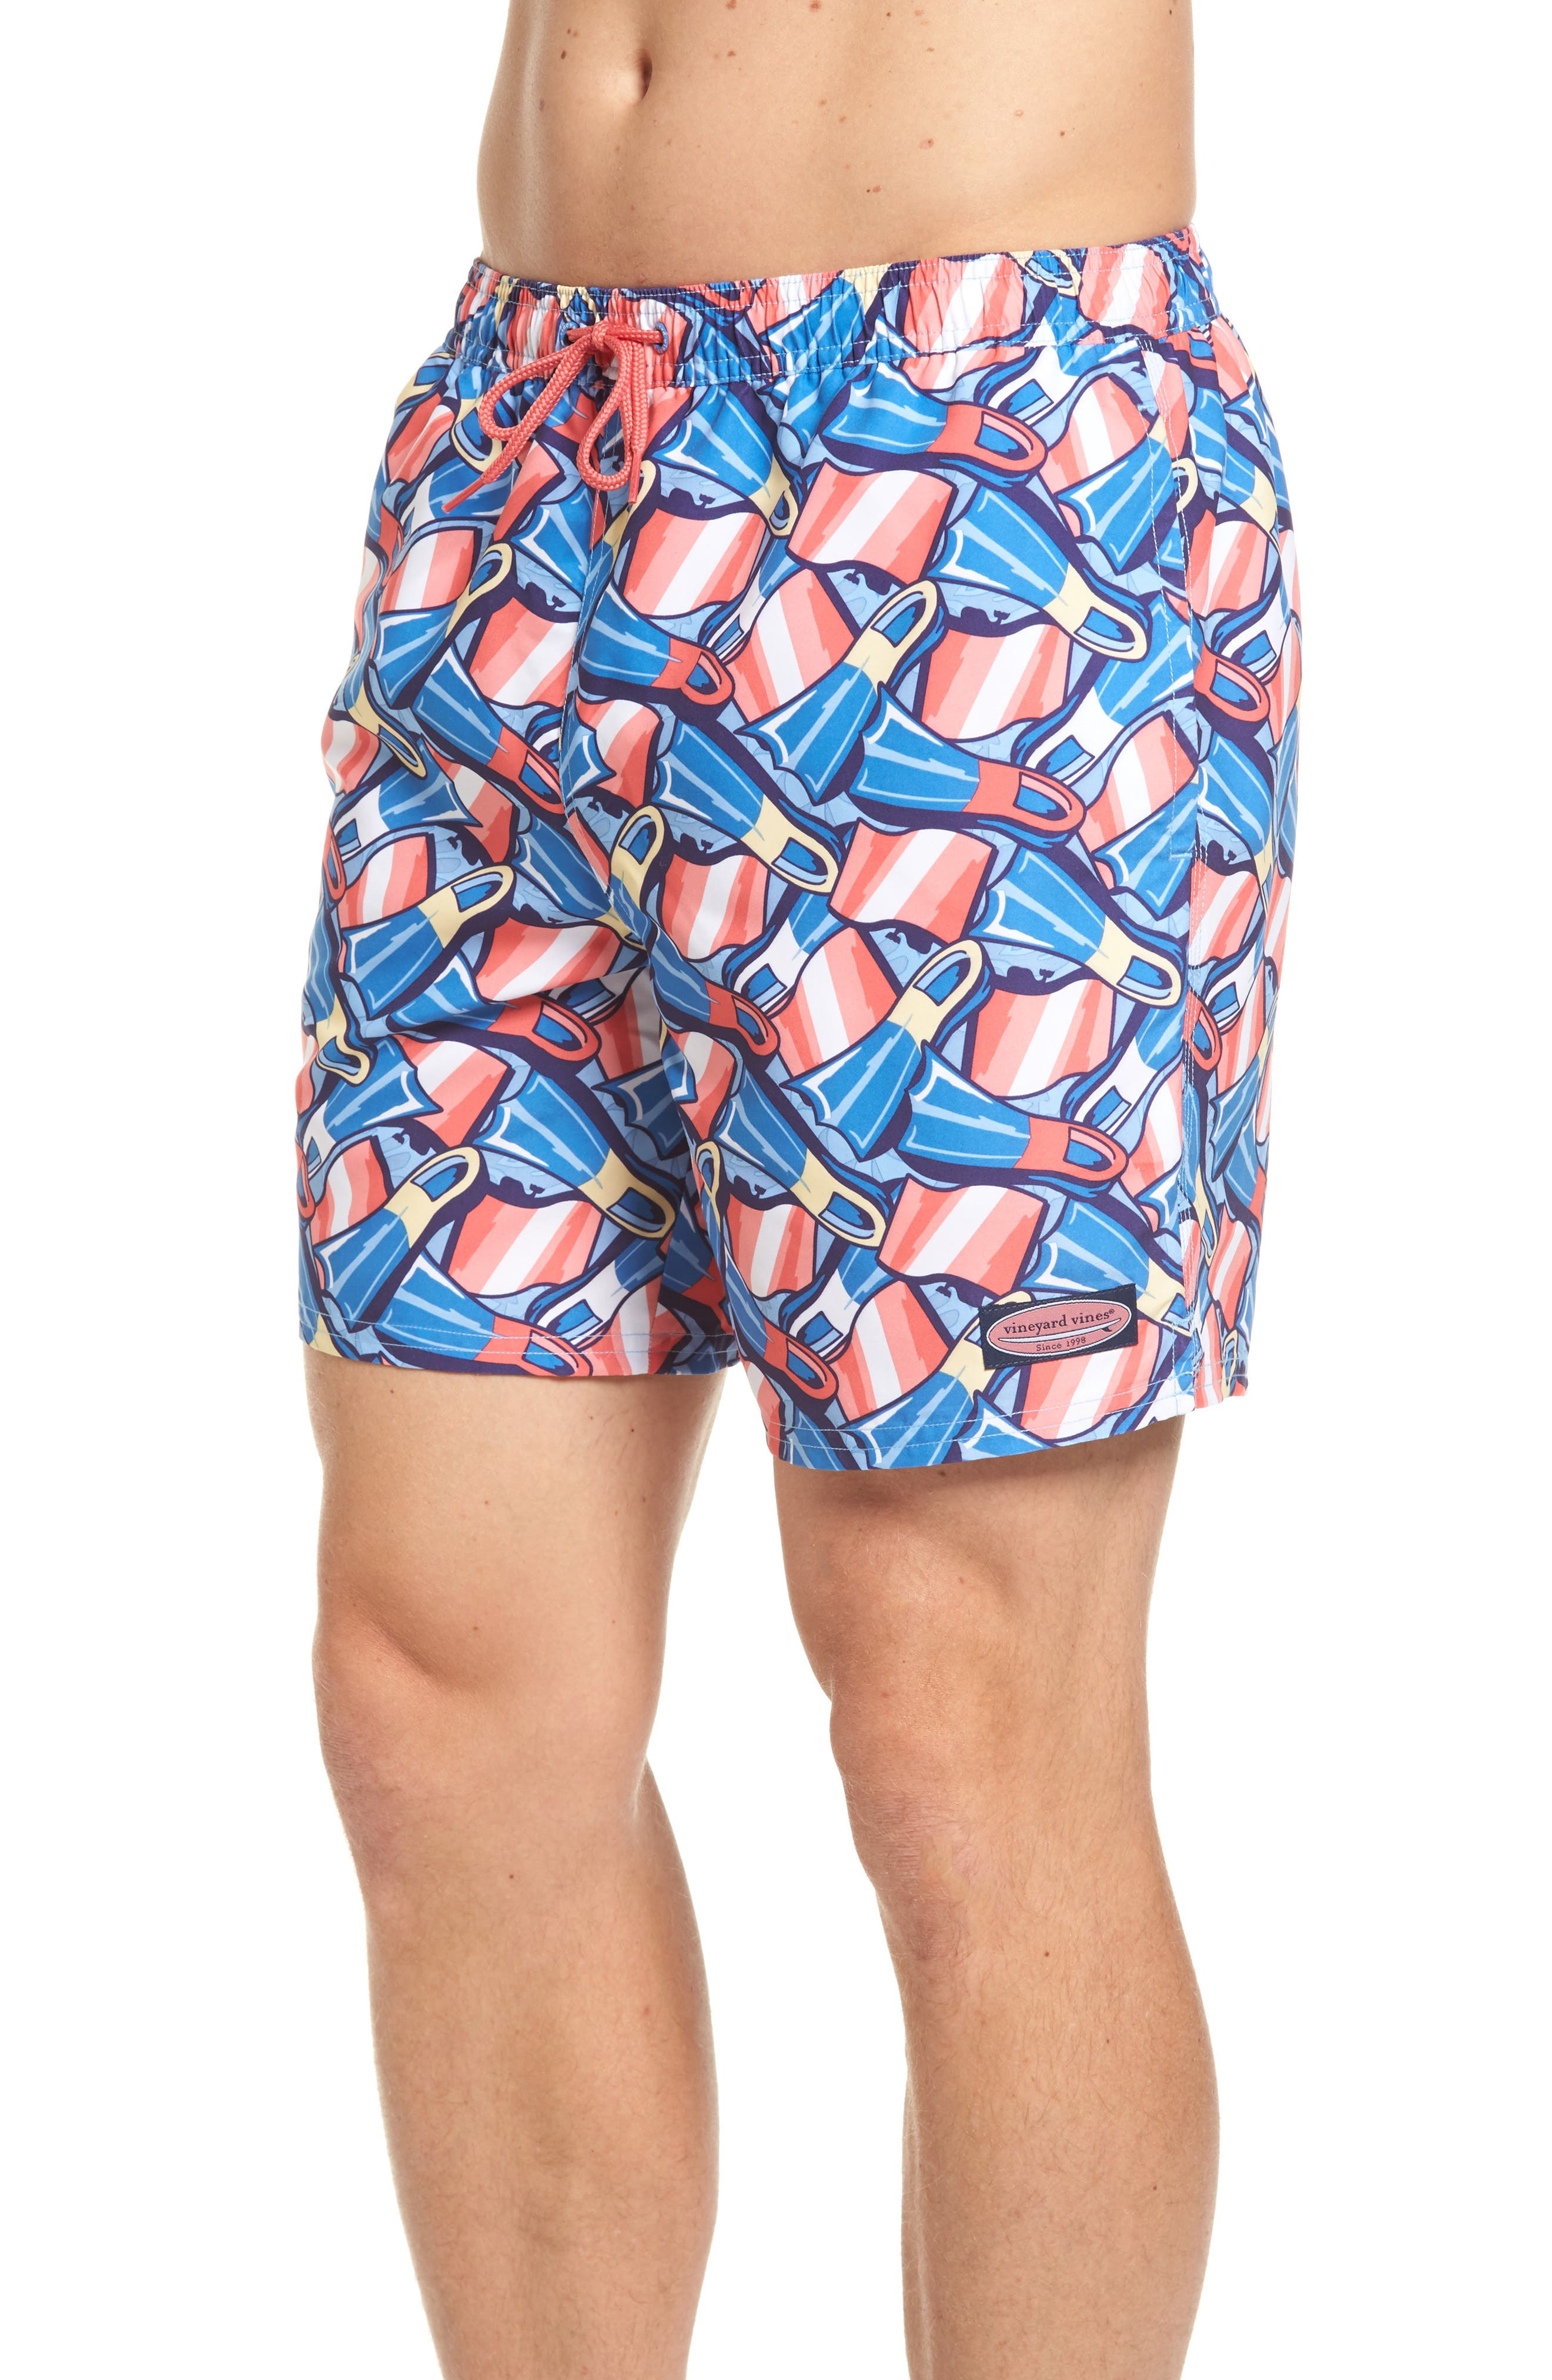 Flippers Chappy Swim Trunks,                             Alternate thumbnail 3, color,                             437